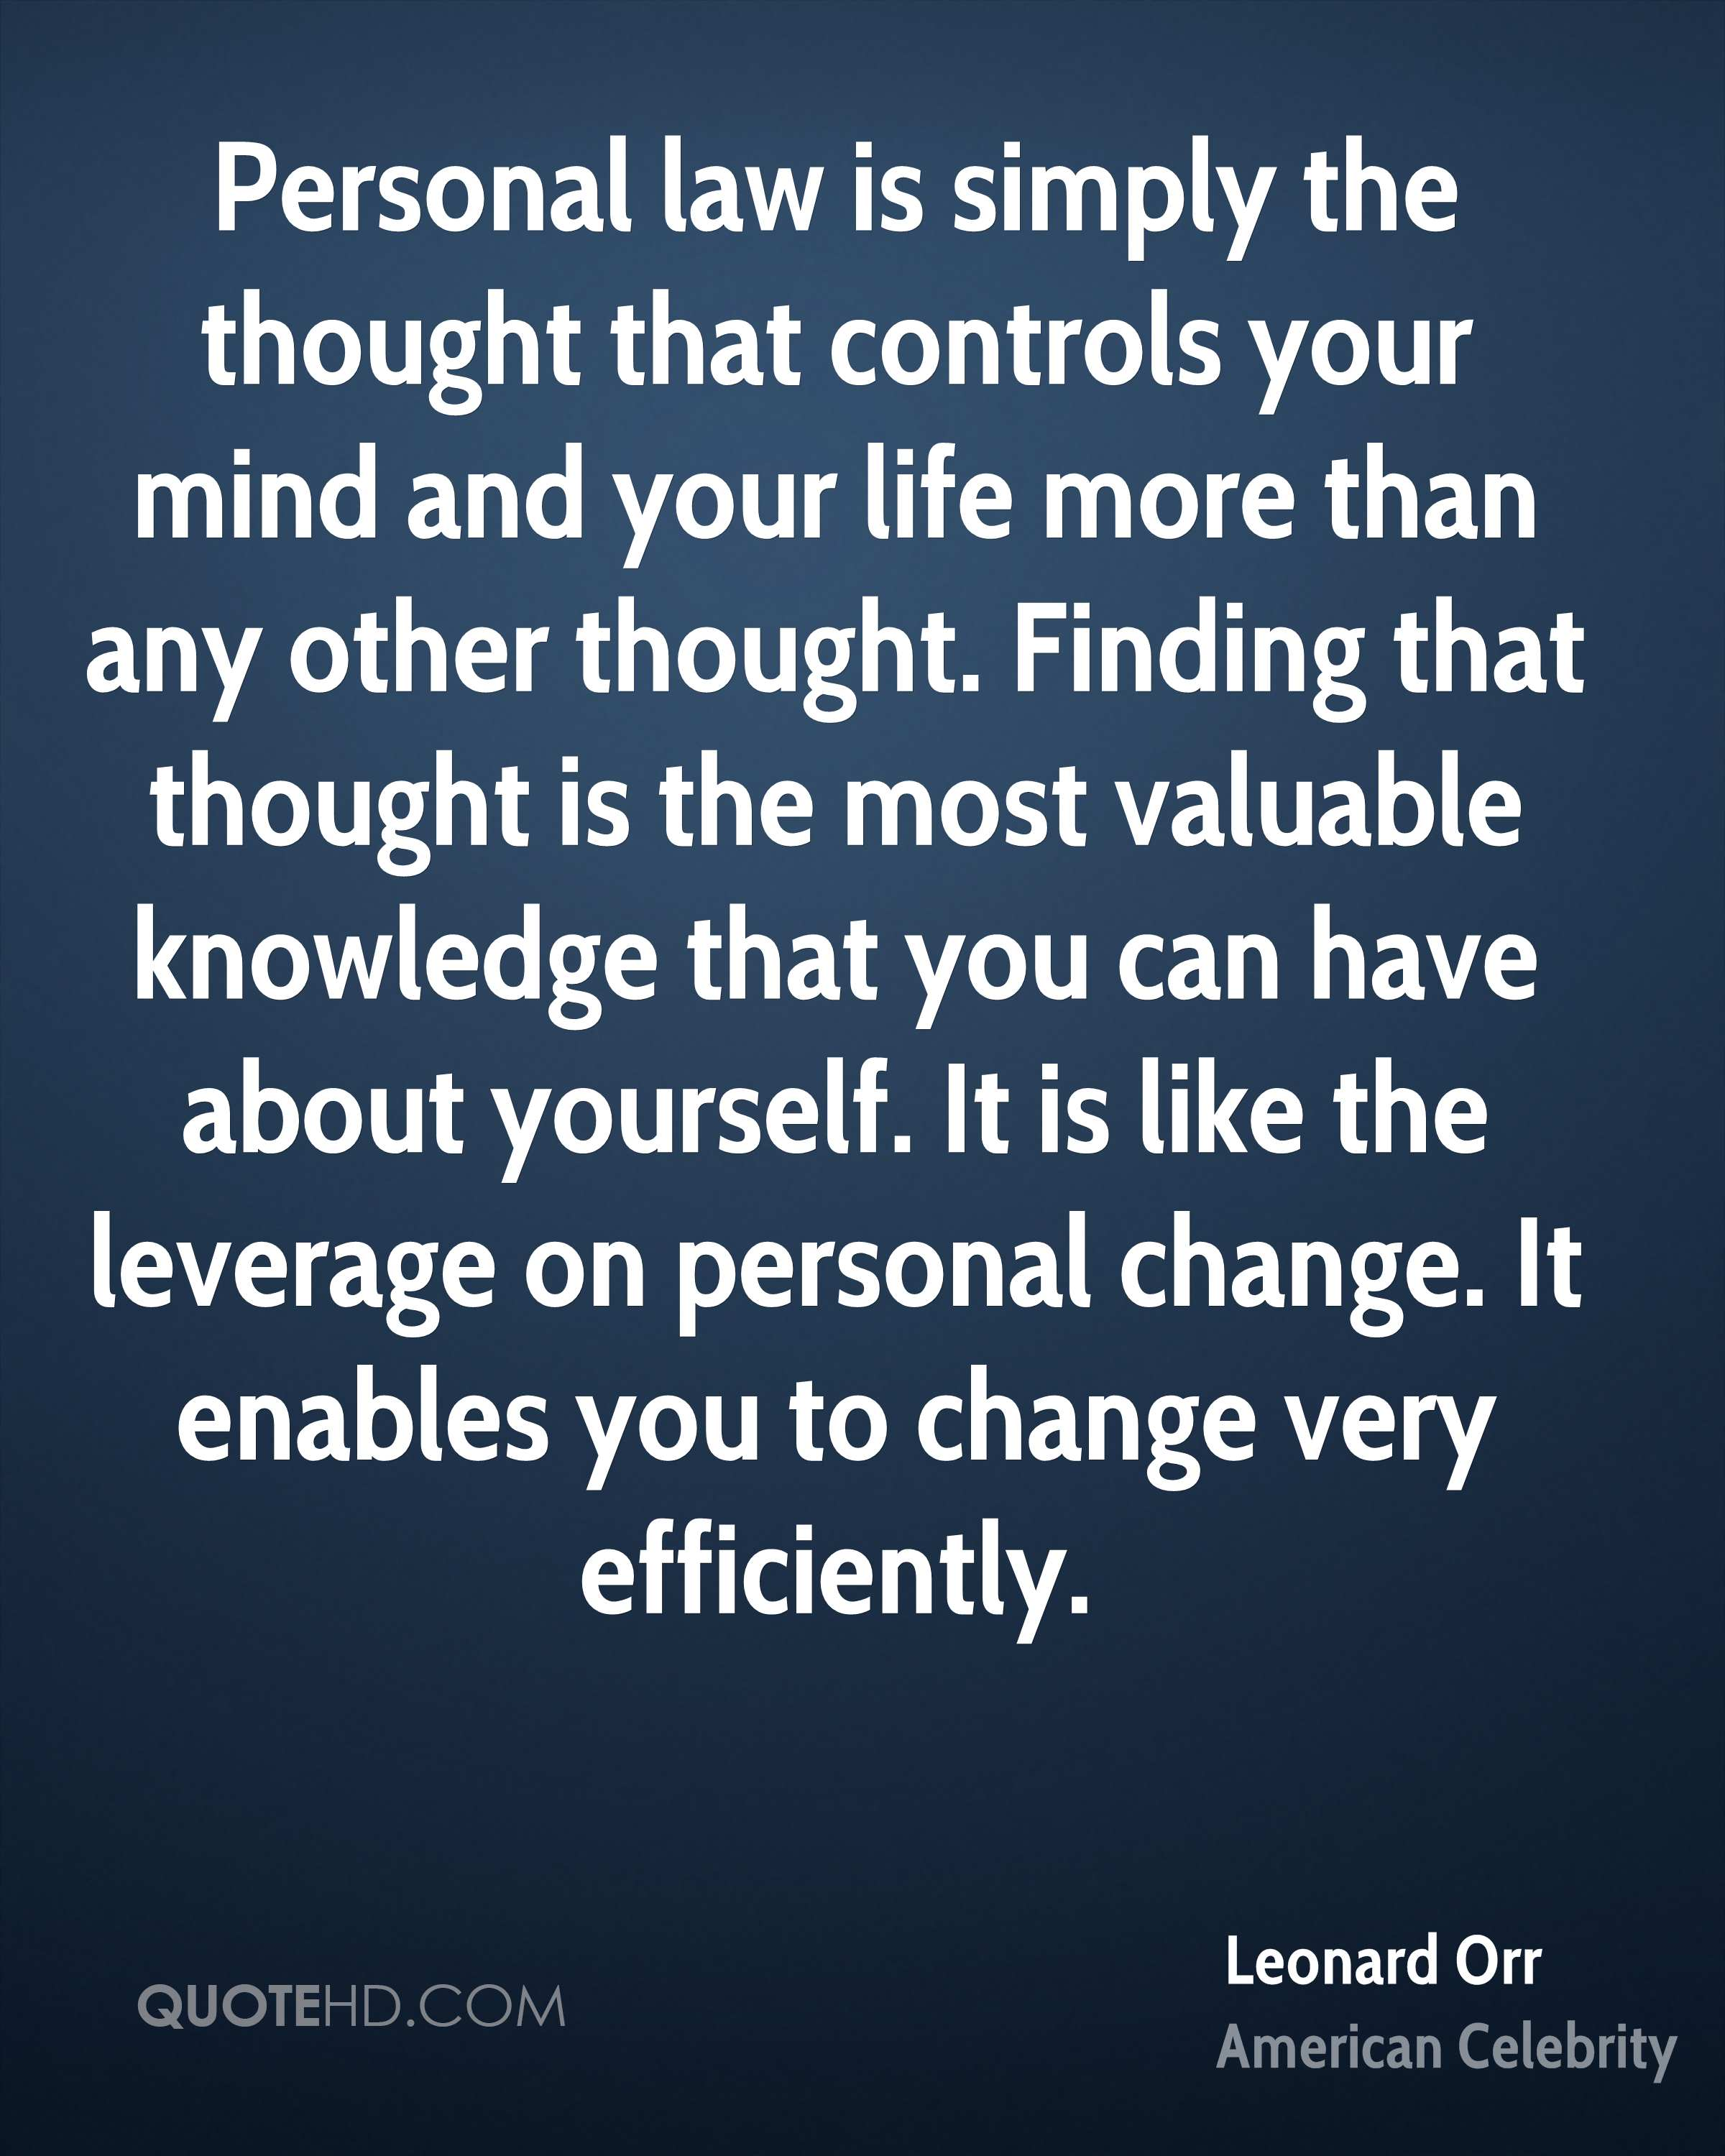 Personal law is simply the thought that controls your mind and your life more than any other thought. Finding that thought is the most valuable knowledge that you can have about yourself. It is like the leverage on personal change. It enables you to change very efficiently.